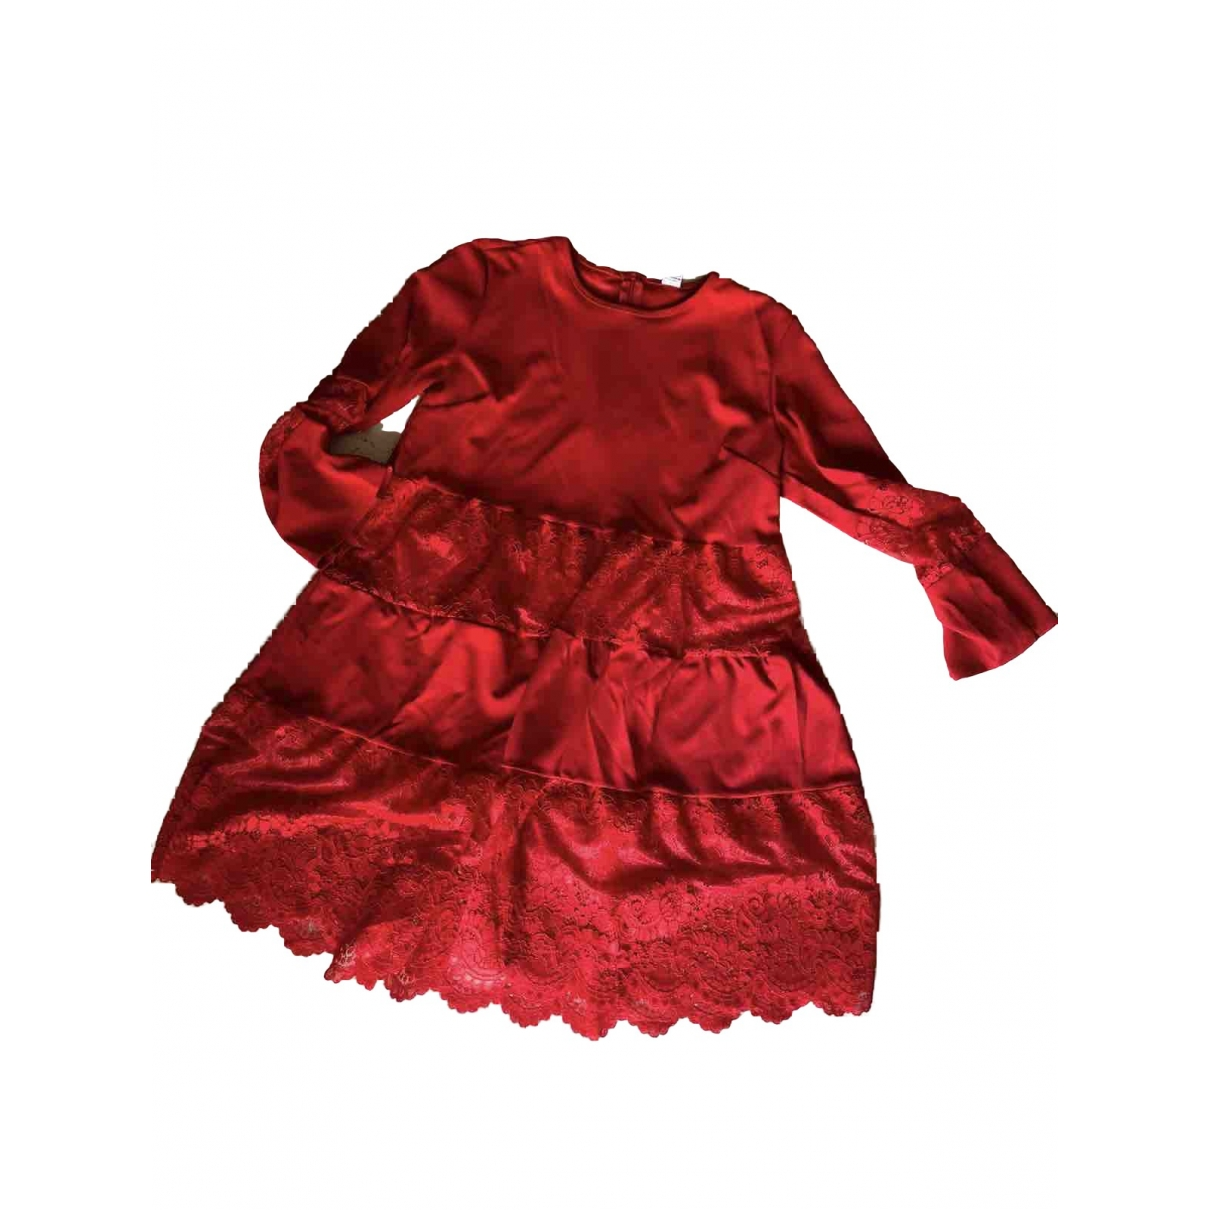 Non Signé / Unsigned Manche ballon Red dress for Women One Size International